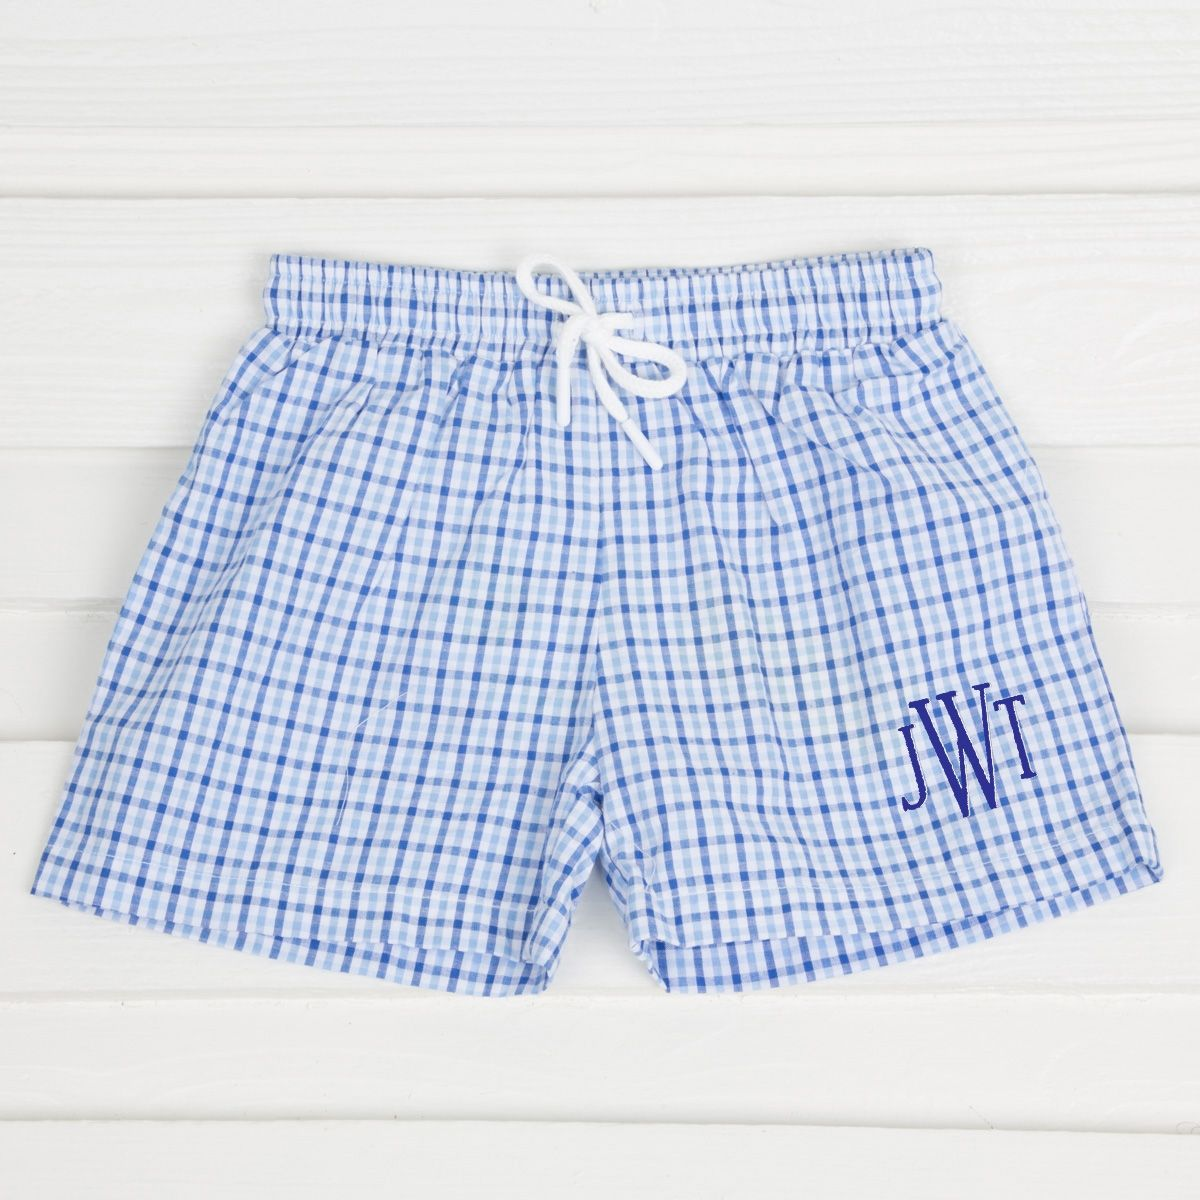 246804edfd This adorable two toned blue seersucker check swim trunk is a great  addition for your little one's wardrobe this season. Cotton blend seersucker .